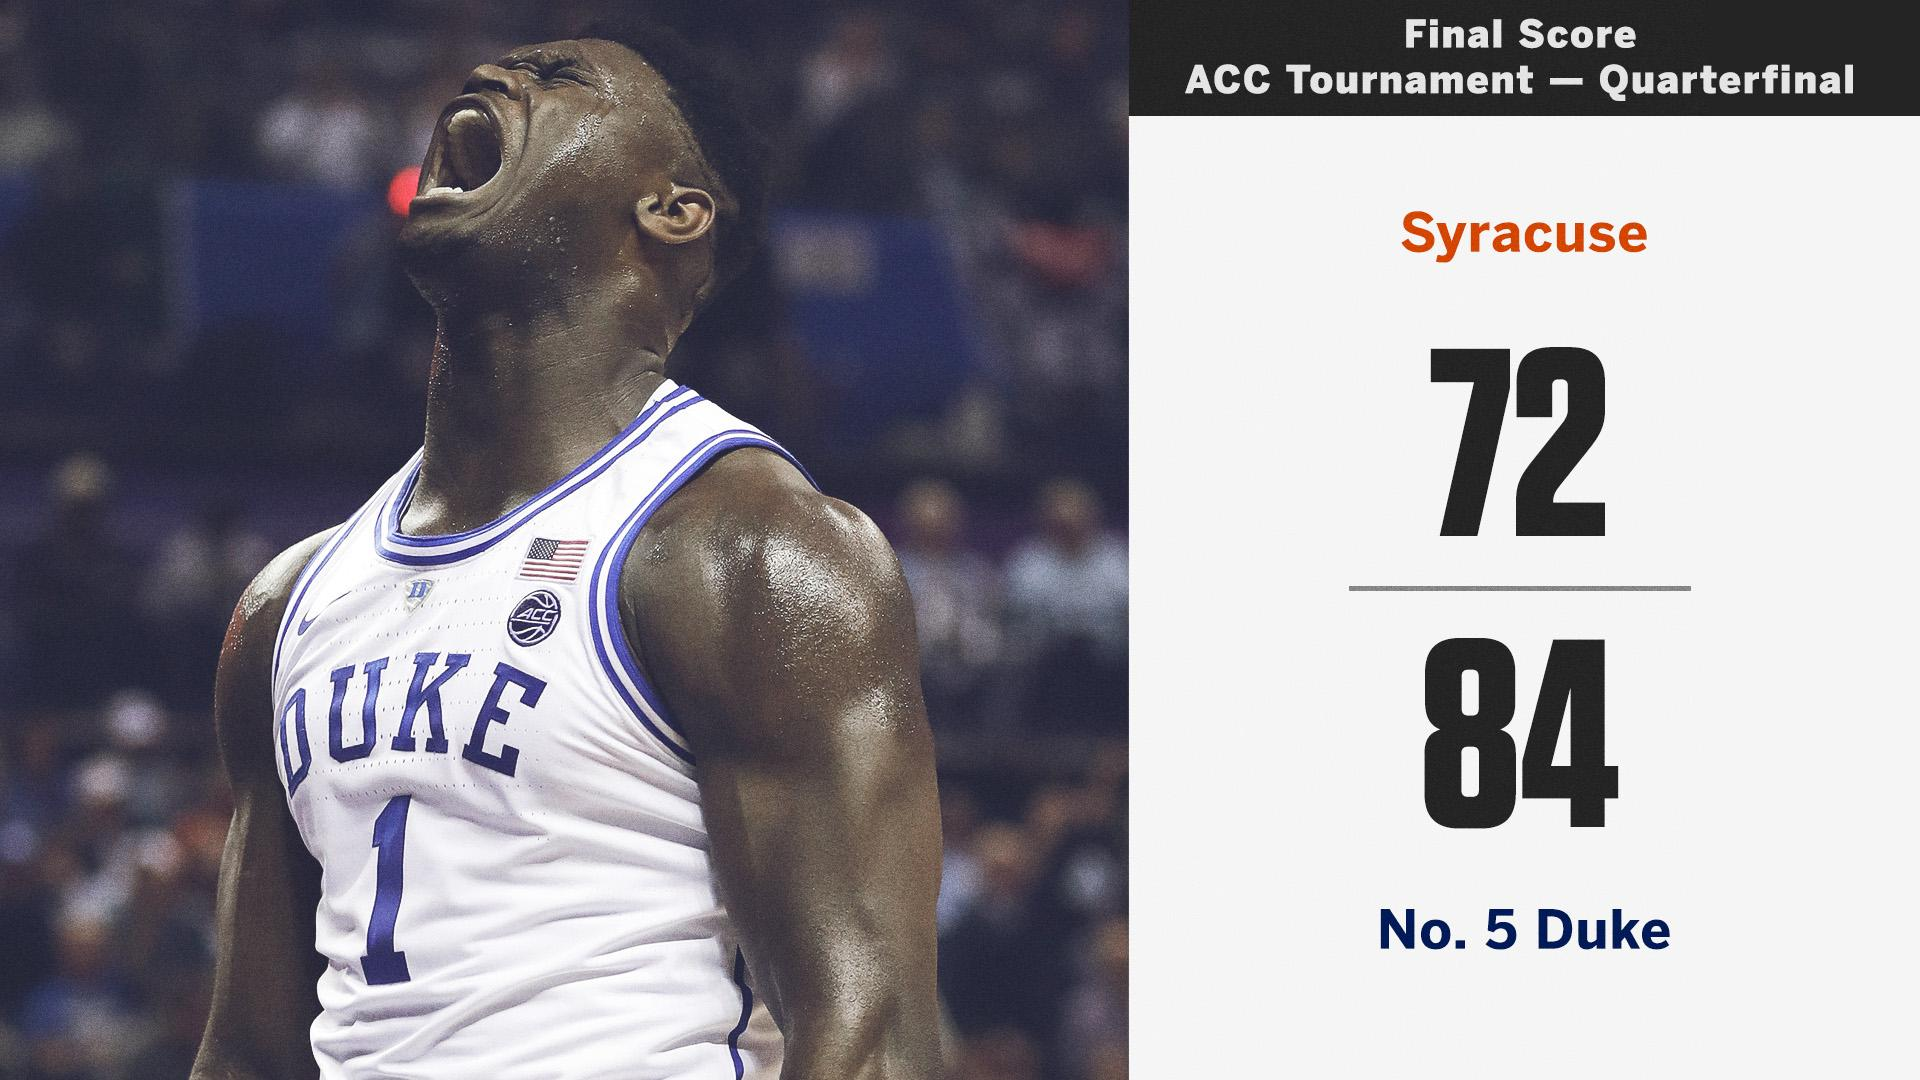 In Zion's return, Duke wins big over Syracuse! https://t.co/DFHhxM4RGs